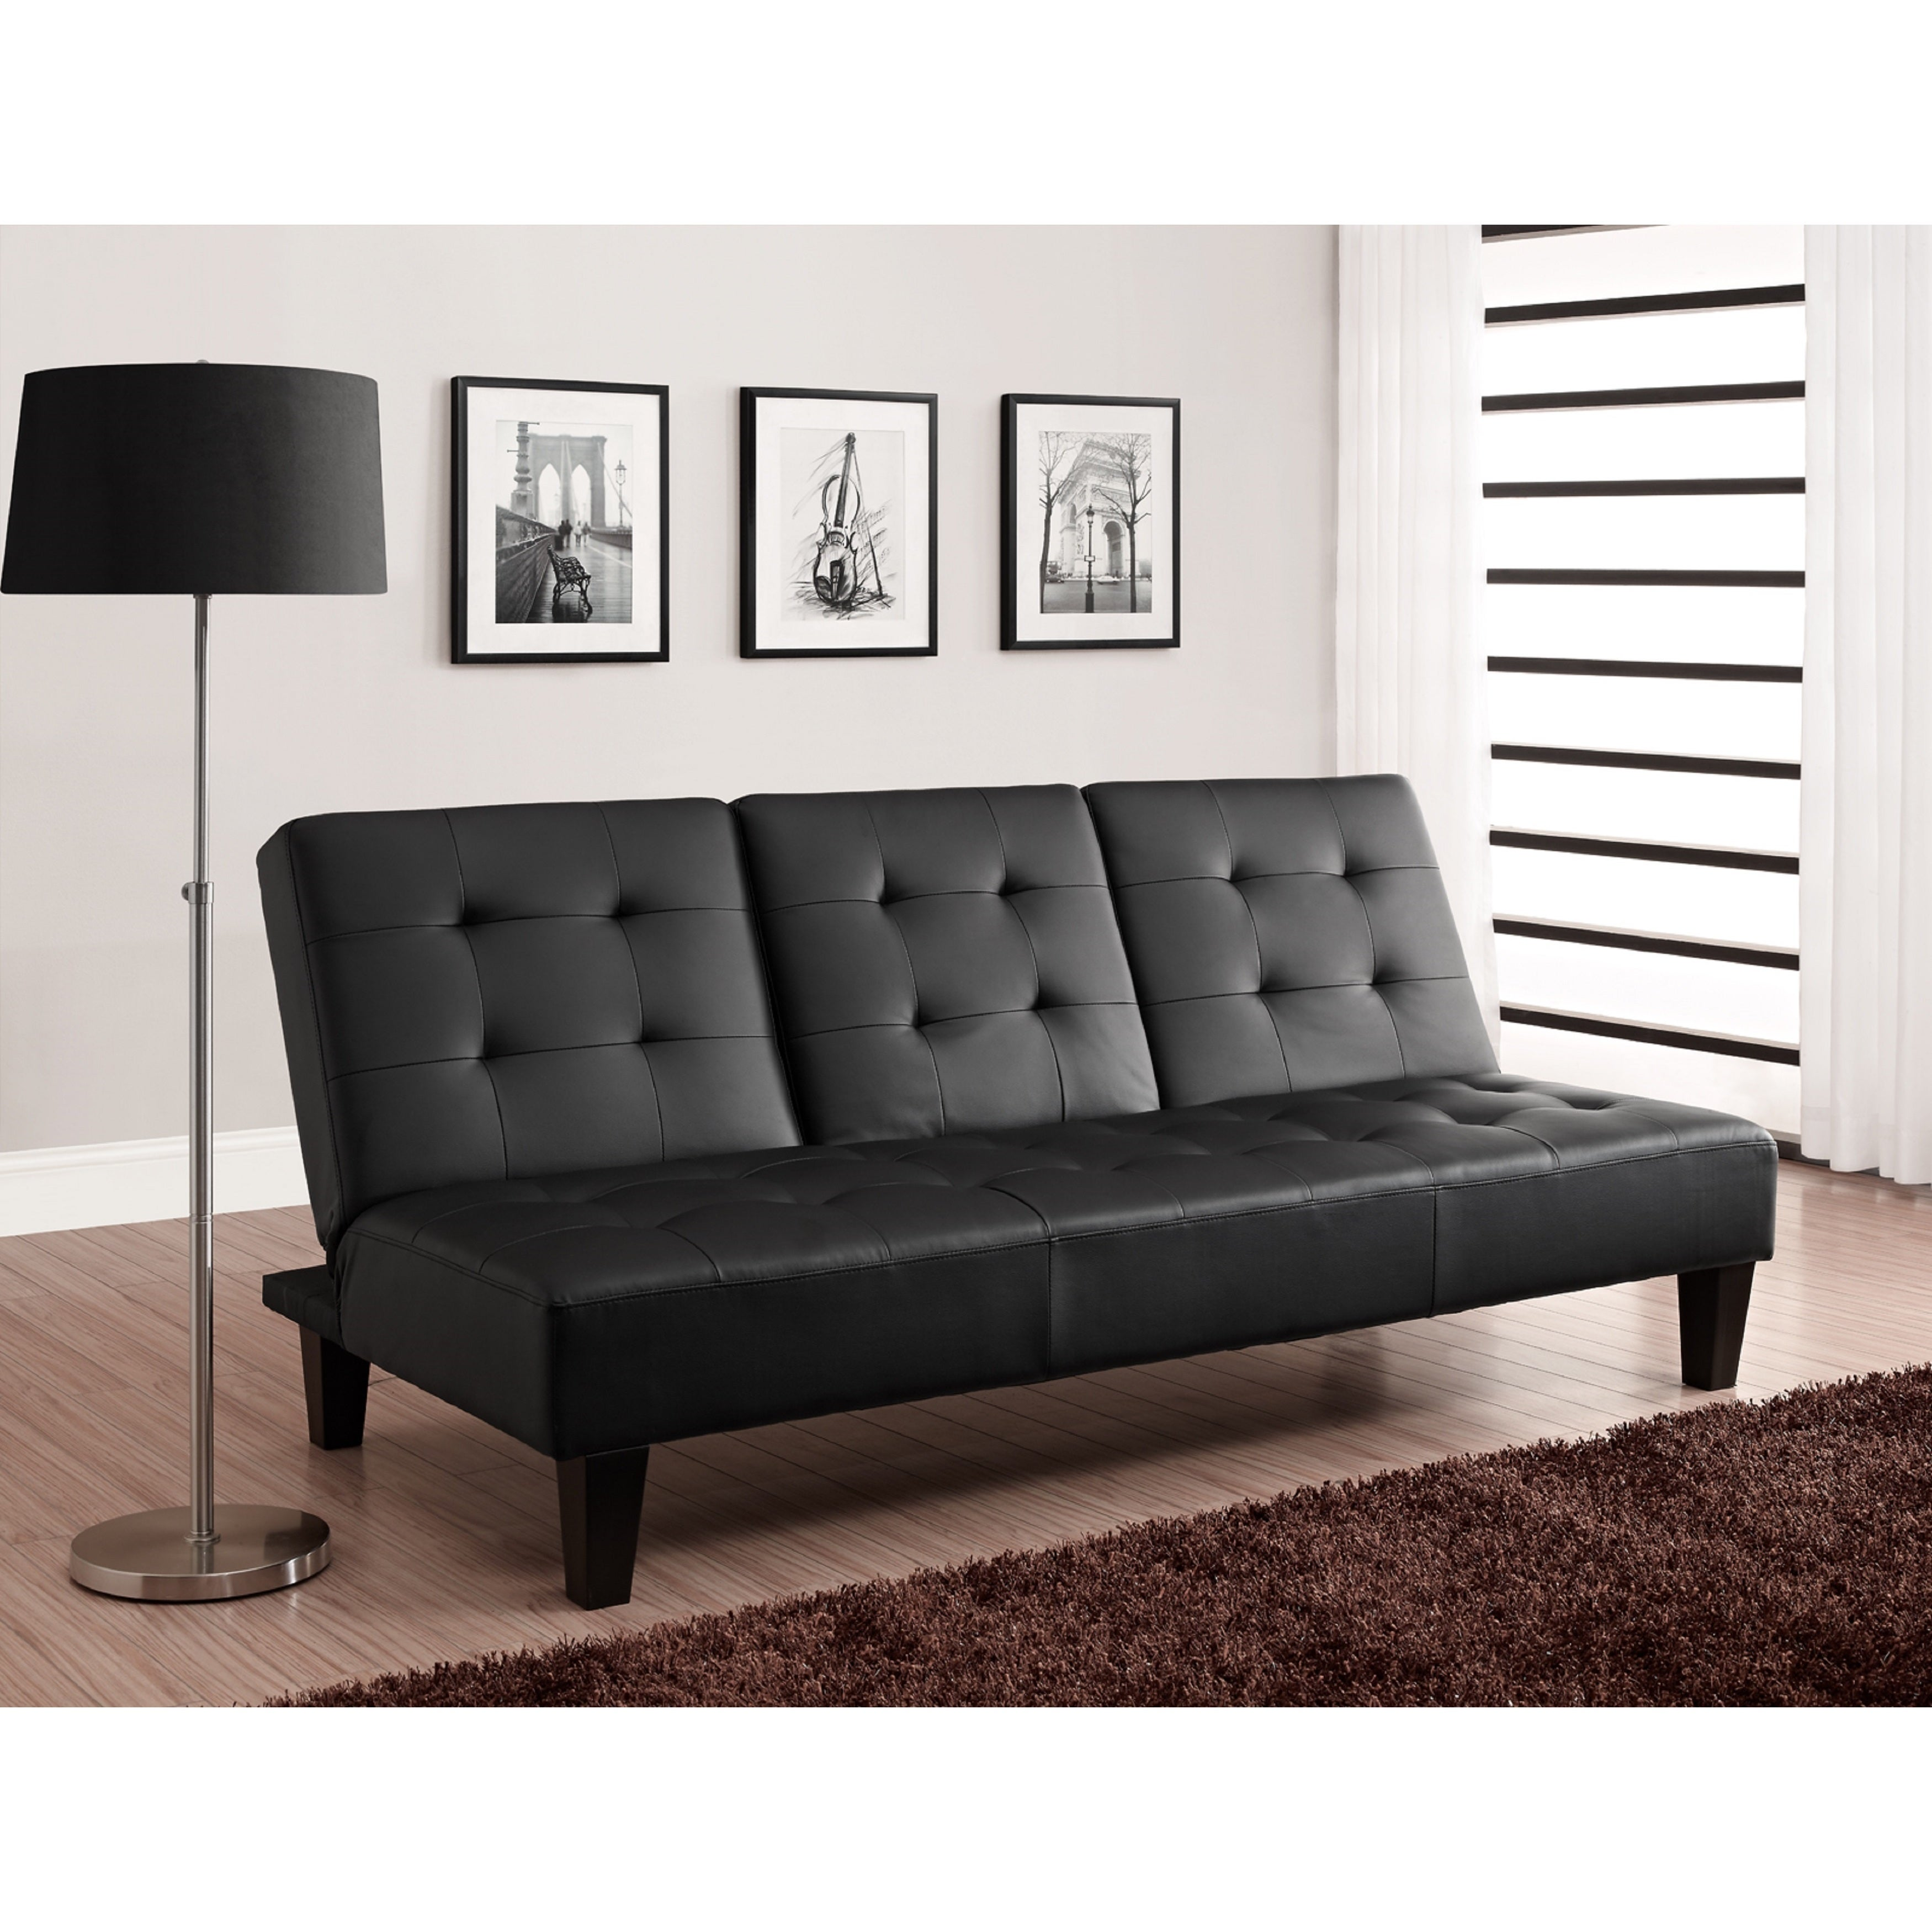 Cup Holder Convertible Futon Sofa Bed